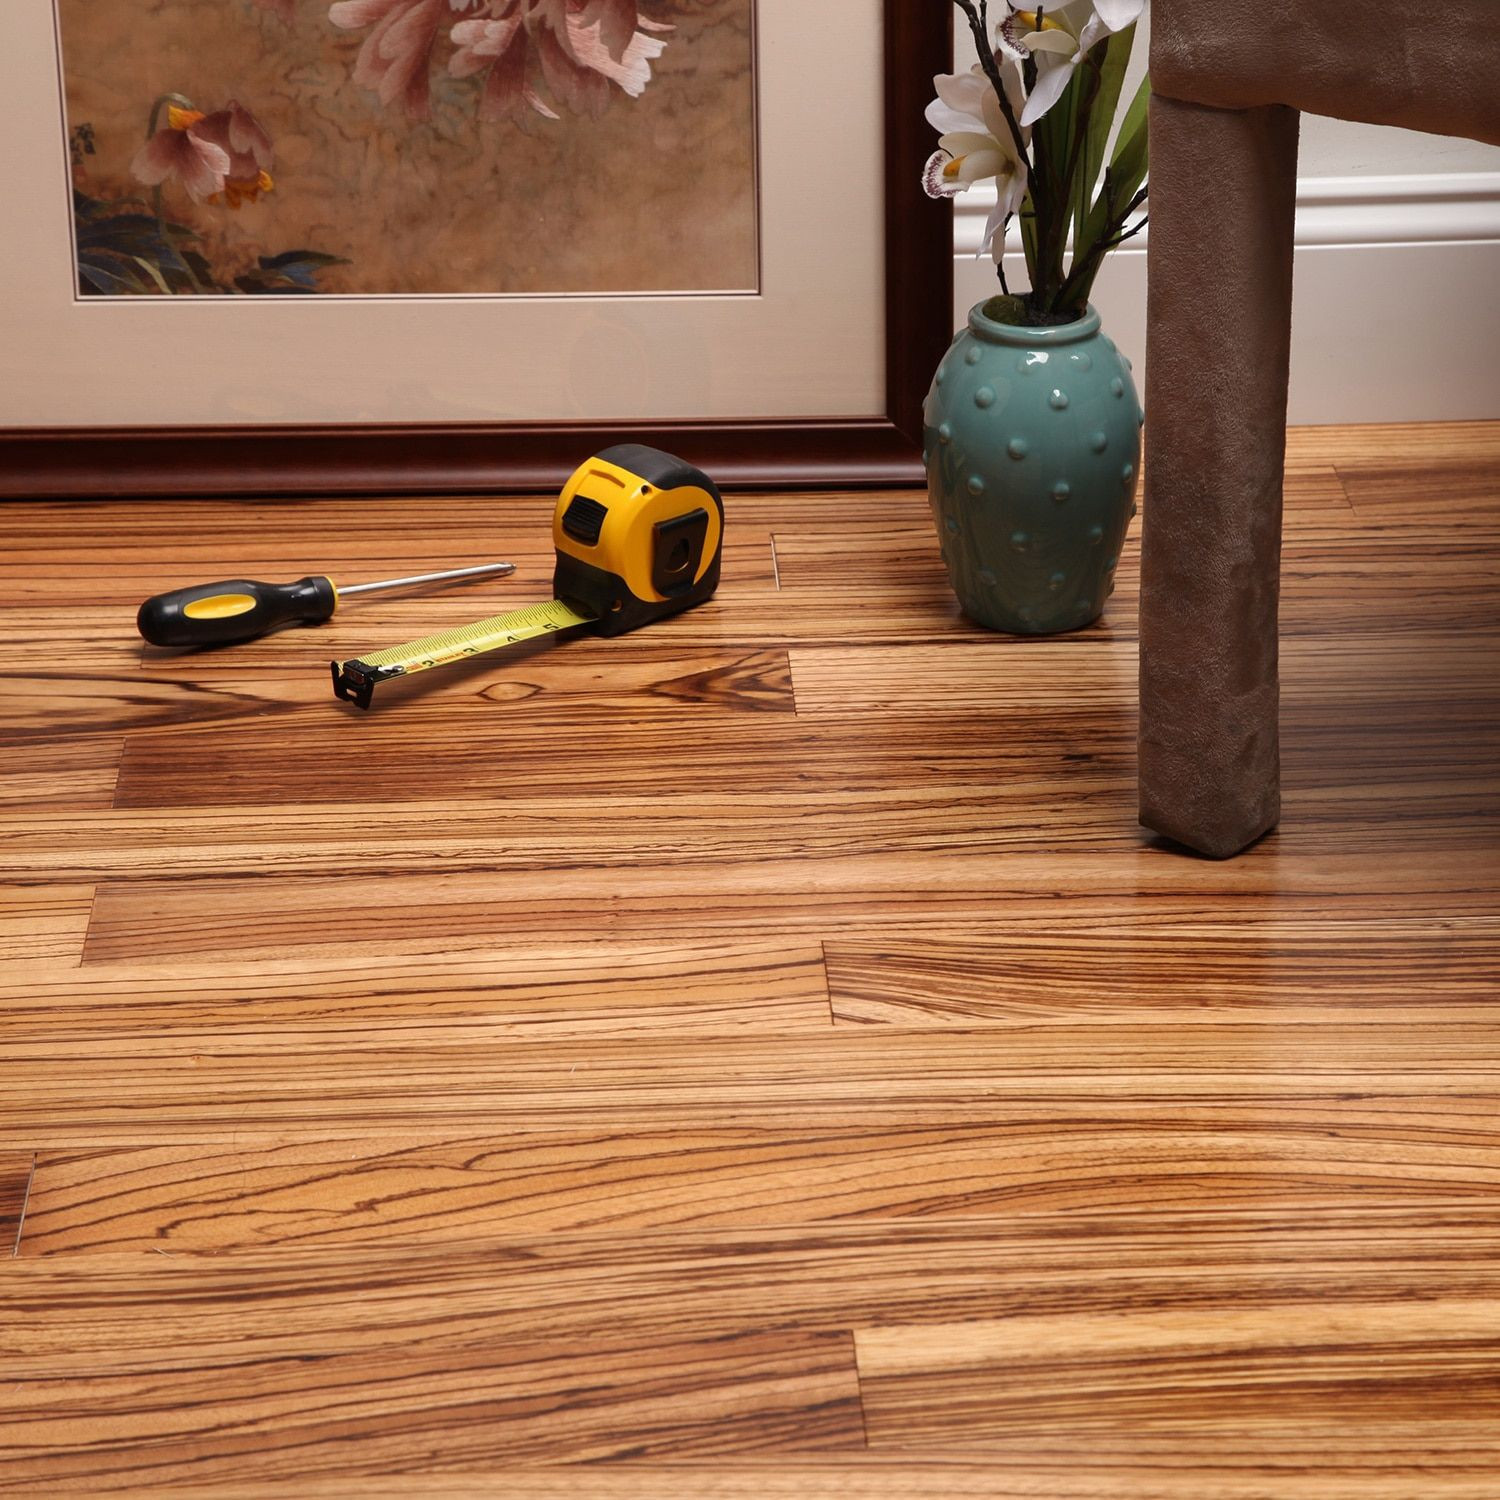 20 attractive Hardwood Flooring Imports 2021 free download hardwood flooring imports of prefinished wood flooring floor plan ideas regarding hardwood flooring add the classic look and feel of hardwood flooring to your home with bamboo